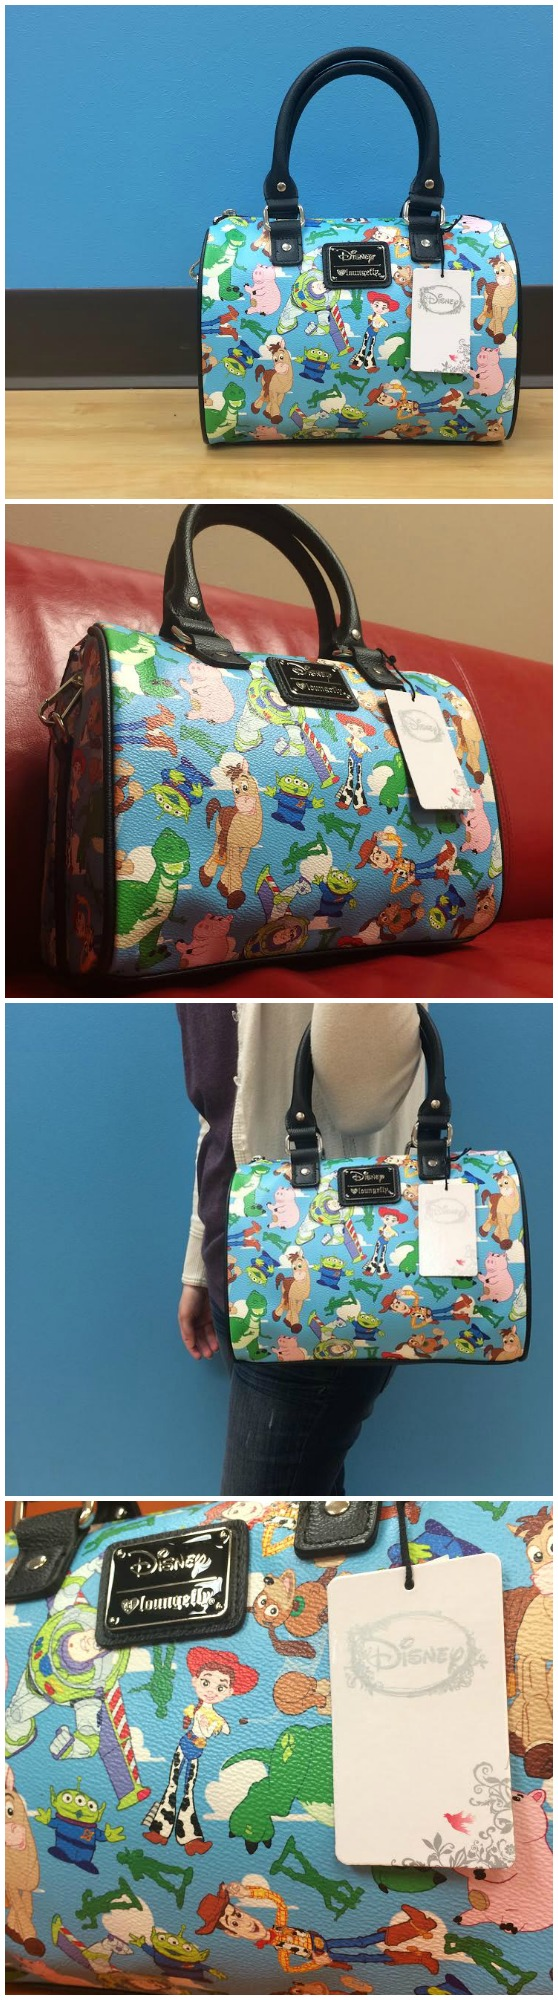 d6cf554a56 An exclusive Toy Story Loungefly bag - only at Fun.com! Woody, Buzz, Jesse,  Rex, Hamm, and more, all on a cute, blue purse!